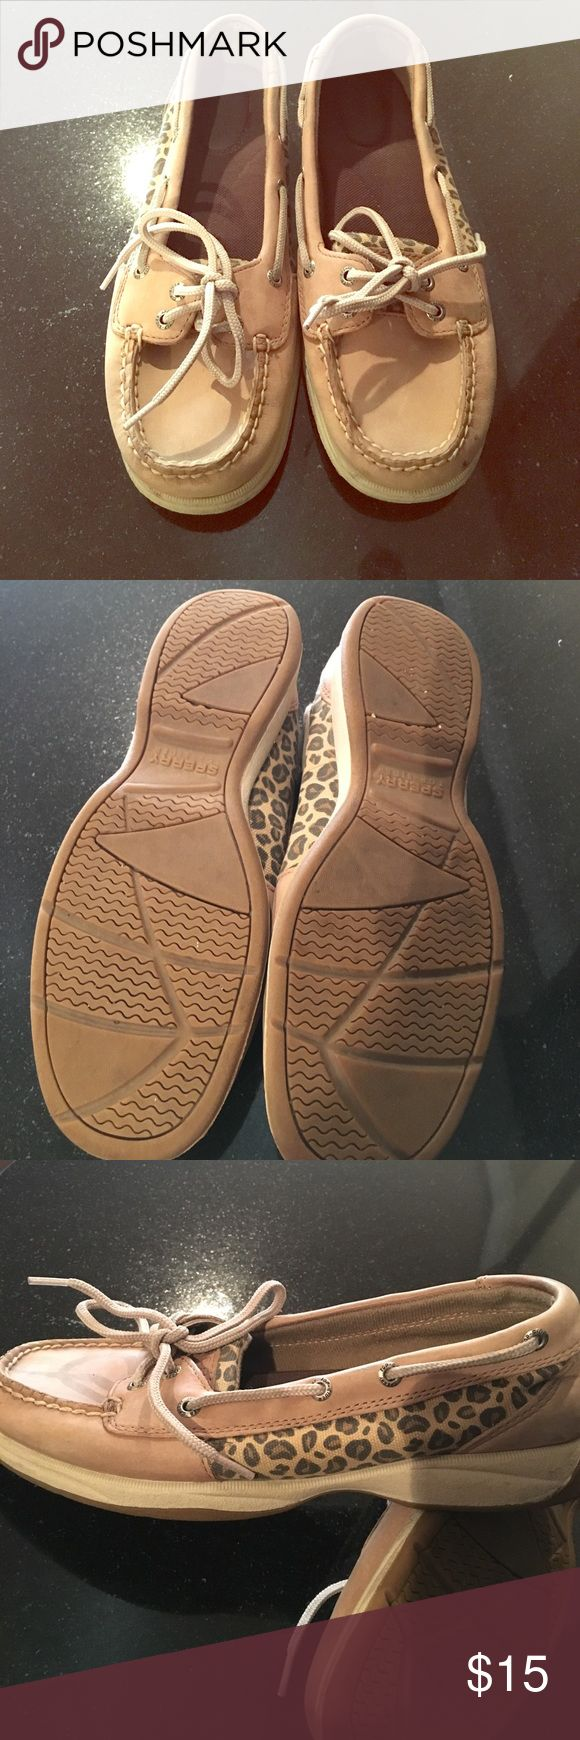 Sperry Angelfish flats Tan/leopard flats worn a handful of times. Super comfortable and in good condition. Sperry Shoes Flats & Loafers